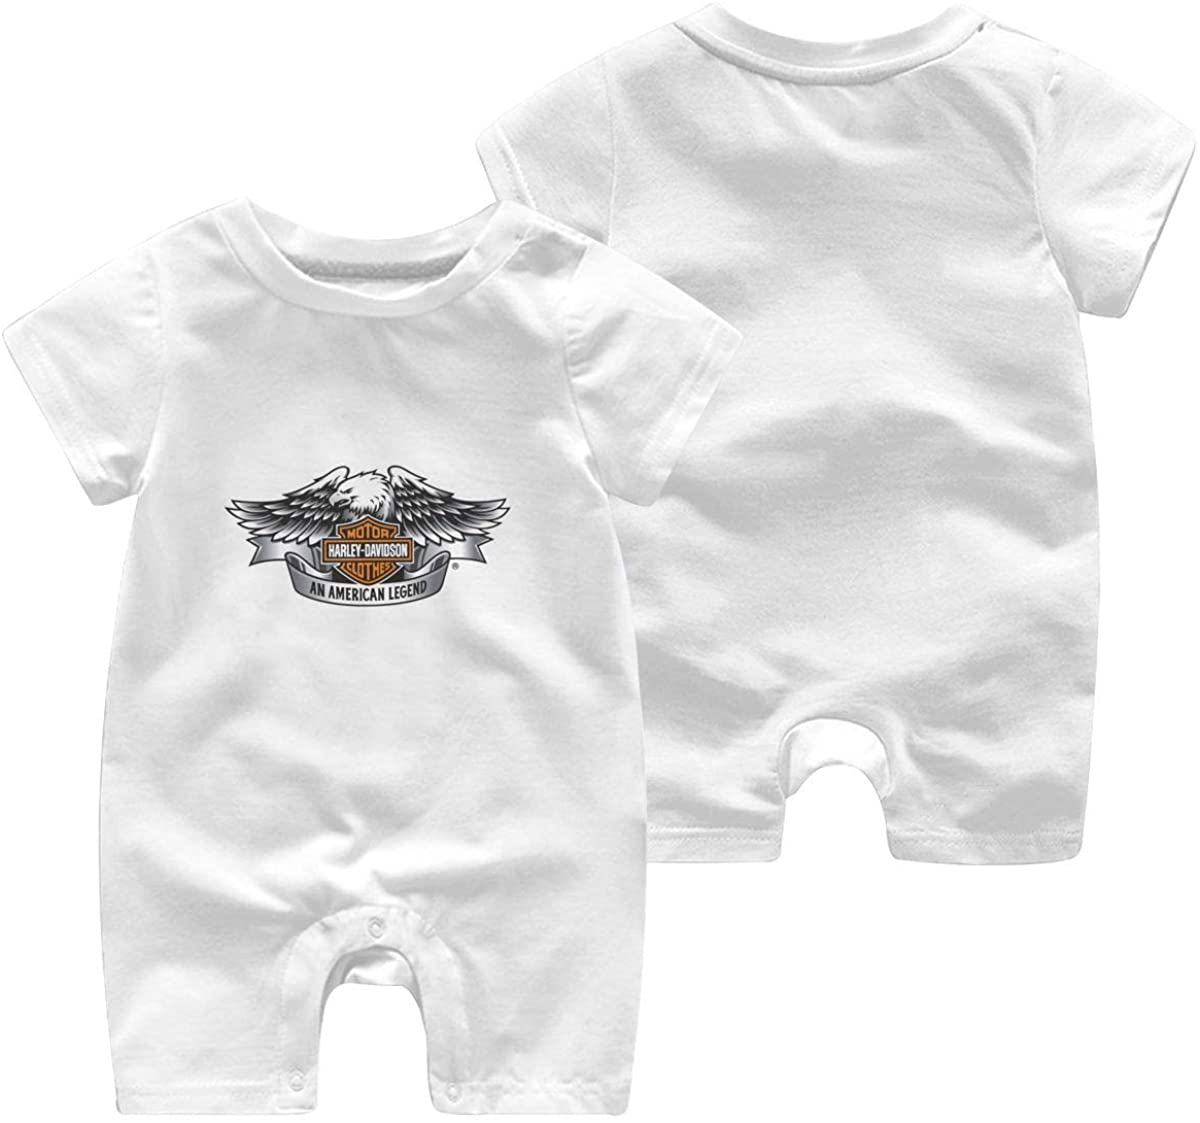 Harley Davidson One Piece Outfits Baby Solid Color Rompers with Button Kids Short Sleeve Playsuit Jumpsuits Cotton Clothing 0-3 Months White